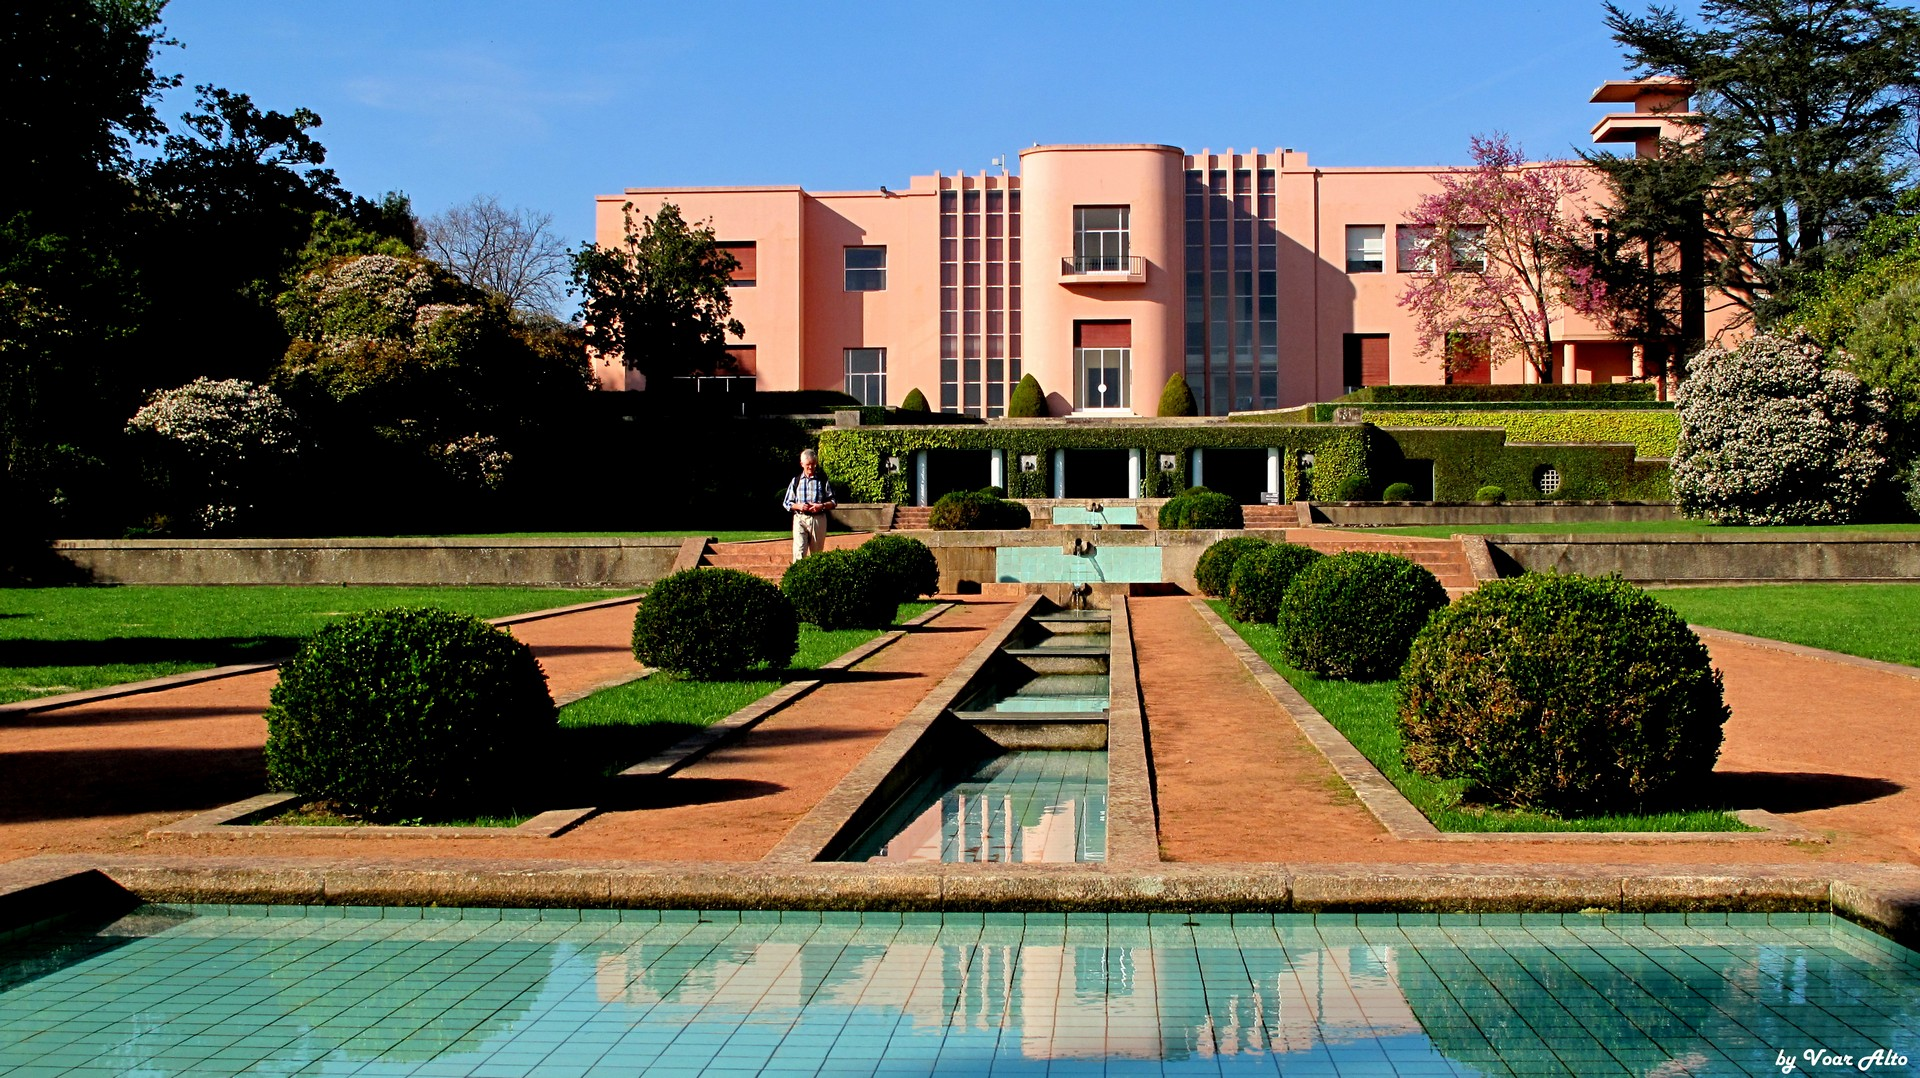 Serralves Foundation, The Master Place For Art To Be Discovered serralves foundation Serralves Foundation, The Master Place For Art To Be Discovered Serralves Foundation The Master Place For Art To Be Discovered 5